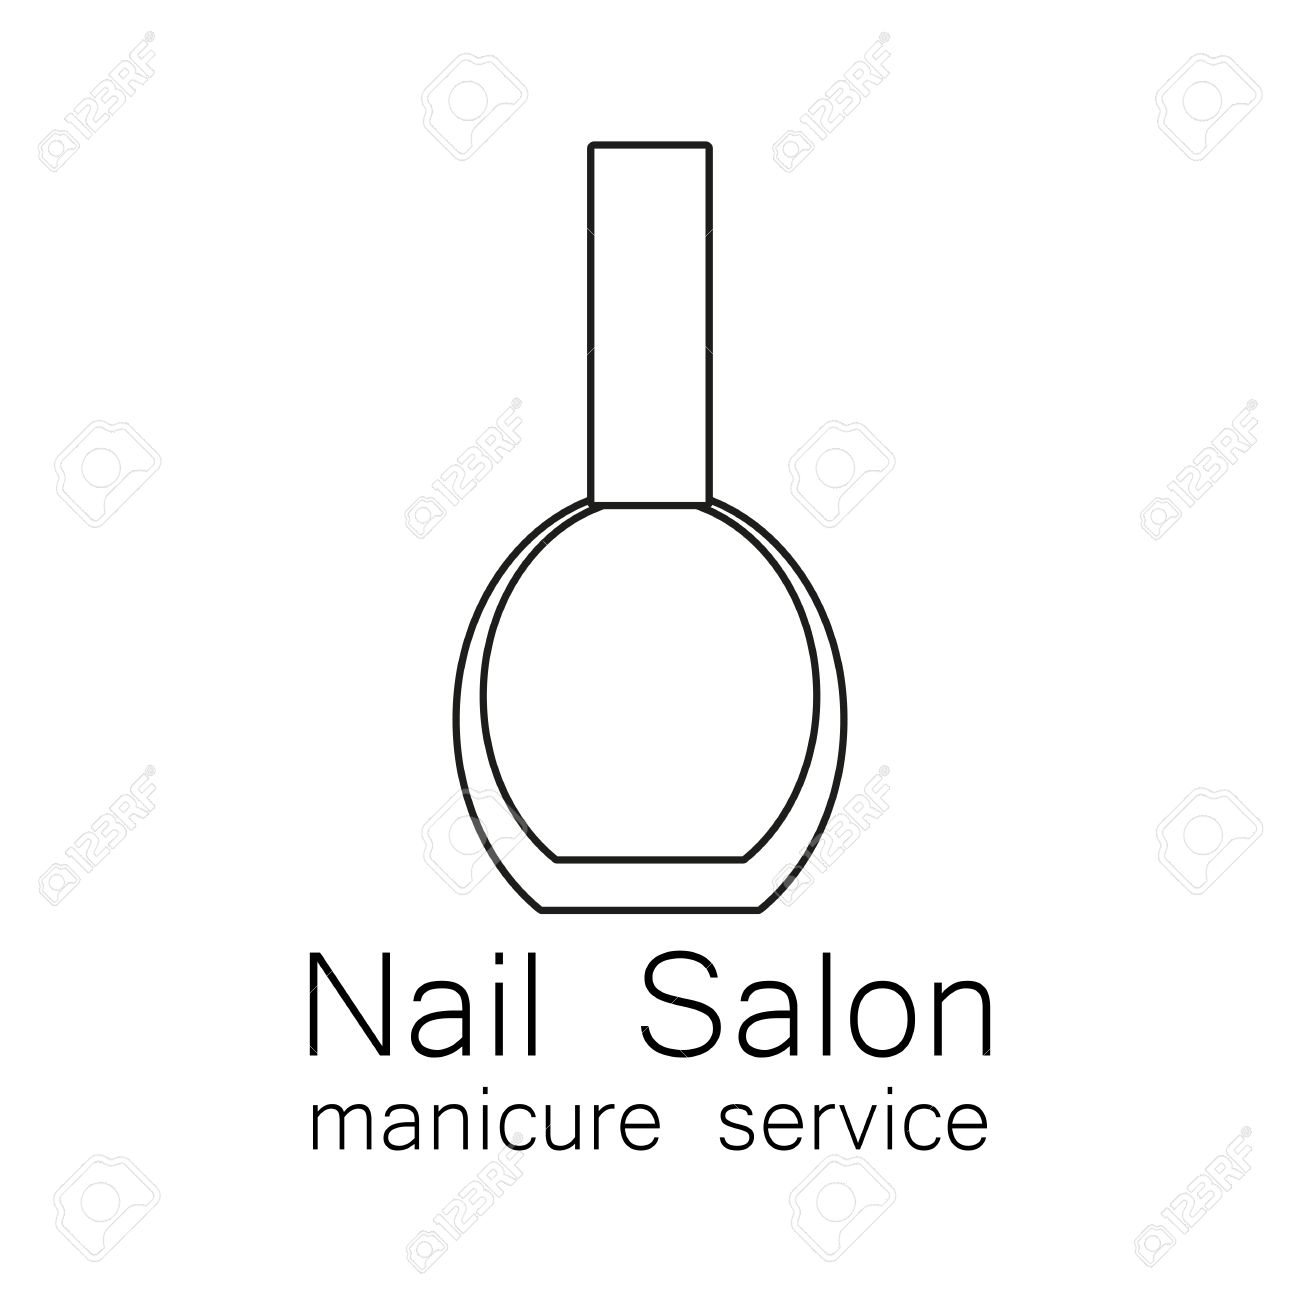 Nail salon logo simple linear nail polishes on a white background nail salon logo simple linear nail polishes on a white background beauty industry ccuart Images